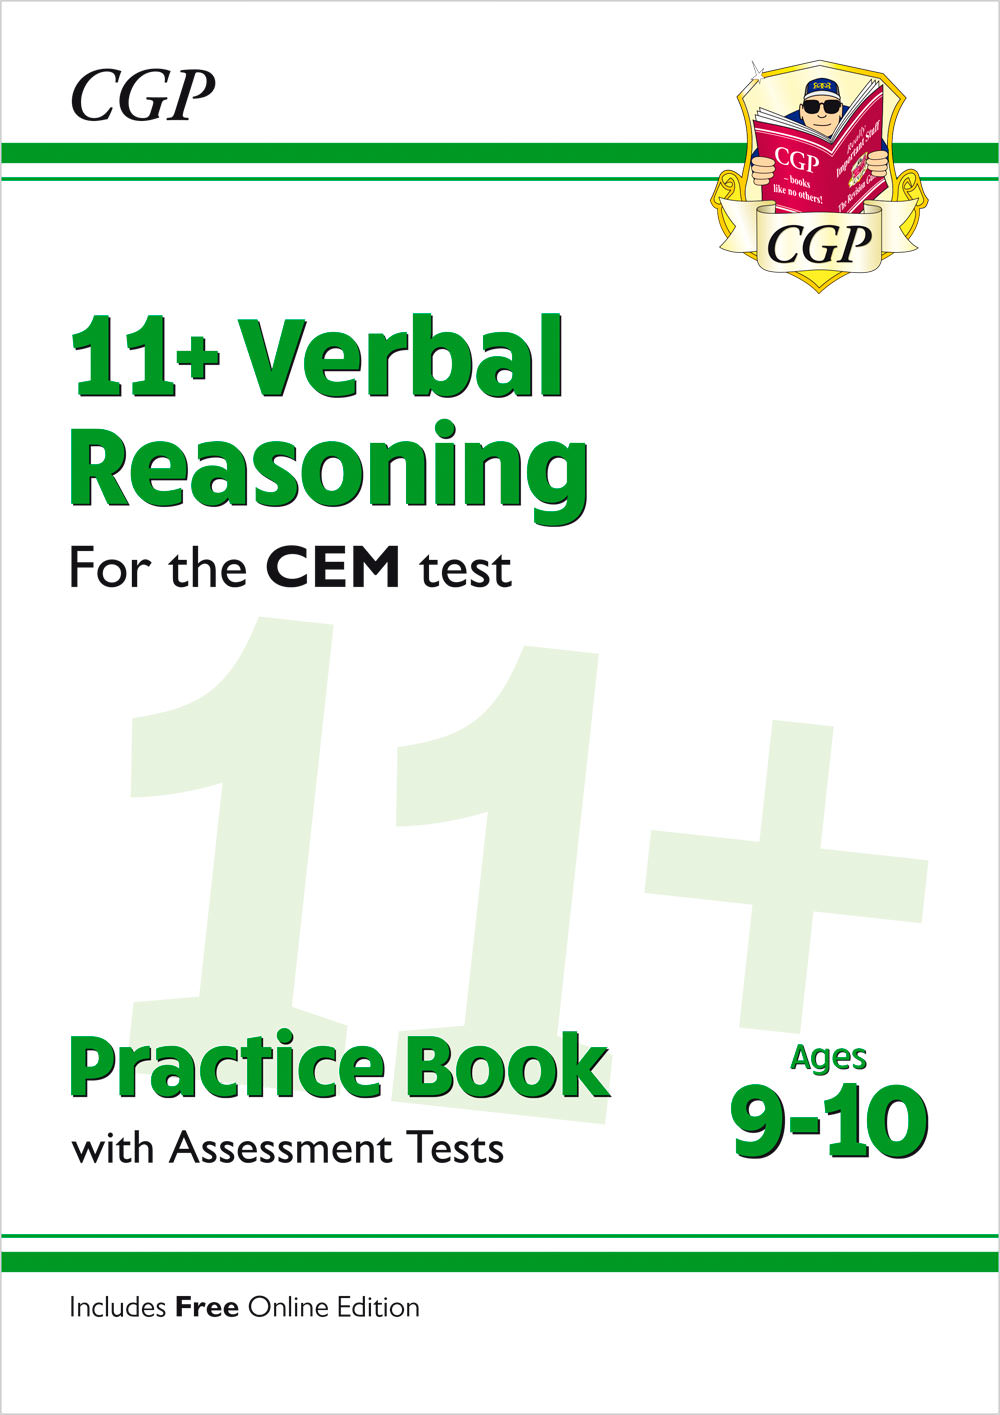 V5QDE2 - New 11+ CEM Verbal Reasoning Practice Book & Assessment Tests - Ages 9-10 (with Online Edit